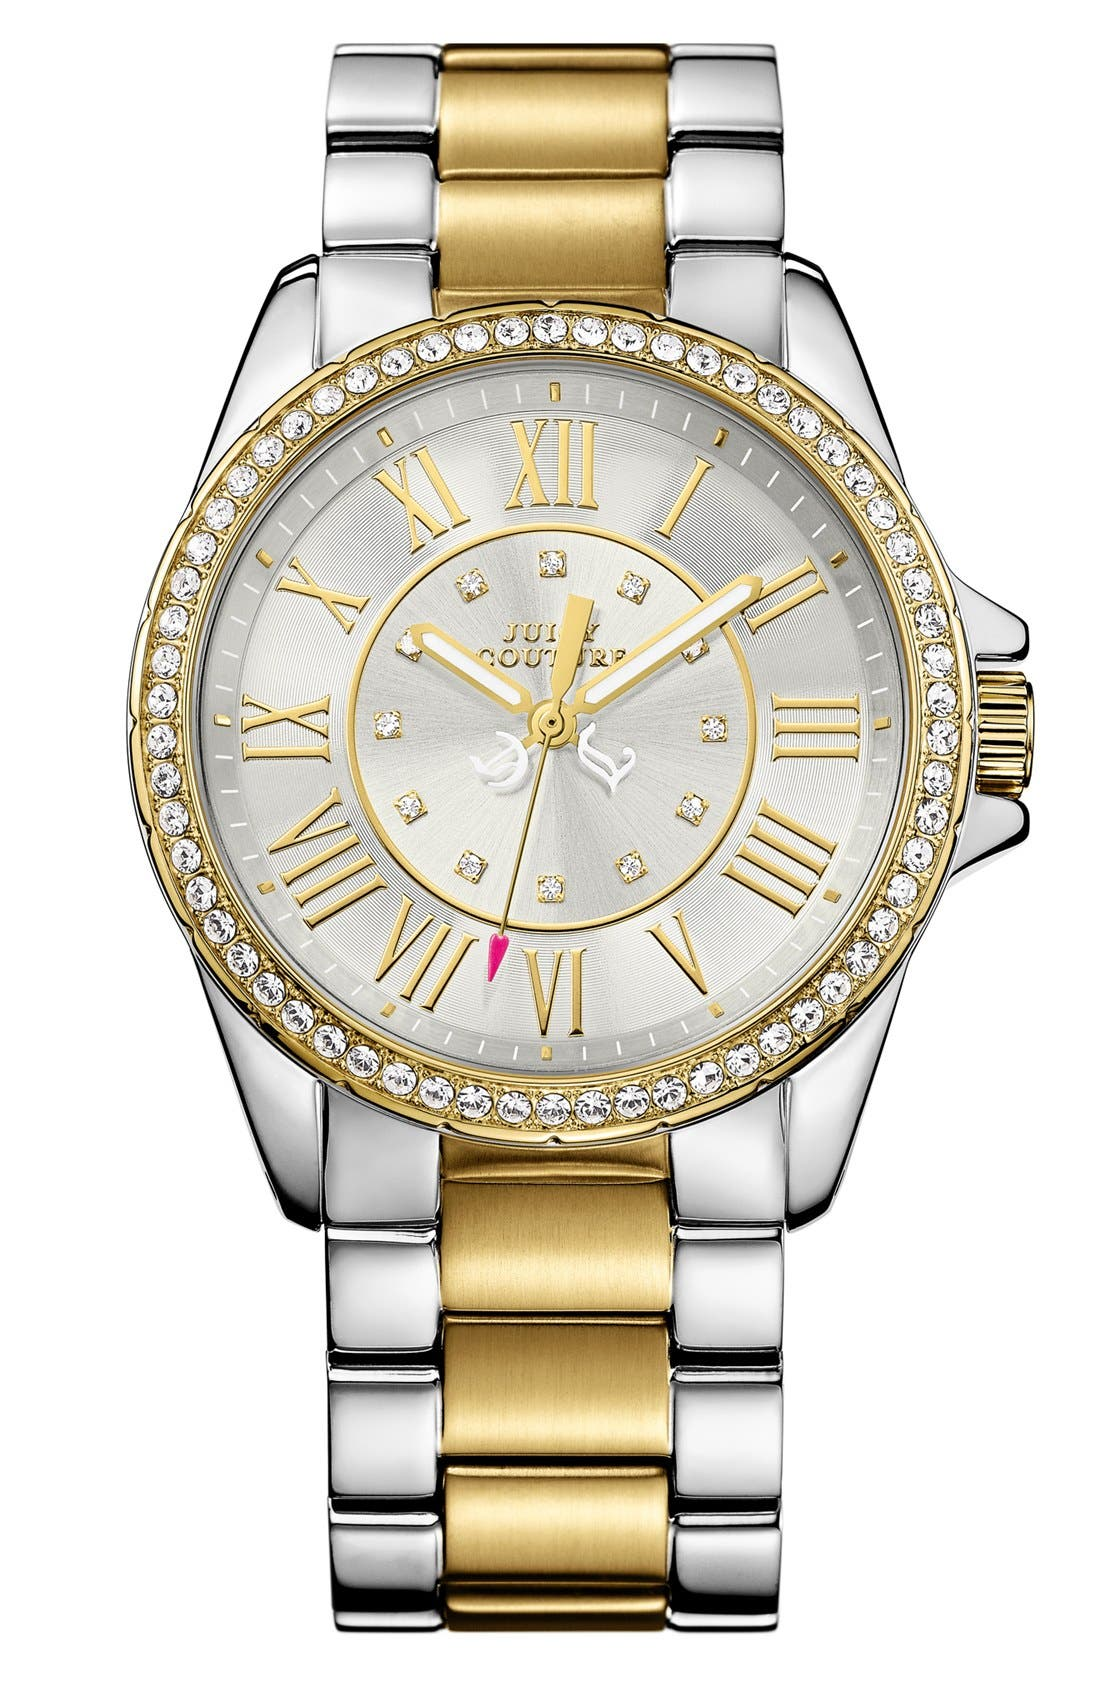 Main Image - Juicy Couture 'Stella' Roman Numeral Watch, 40mm